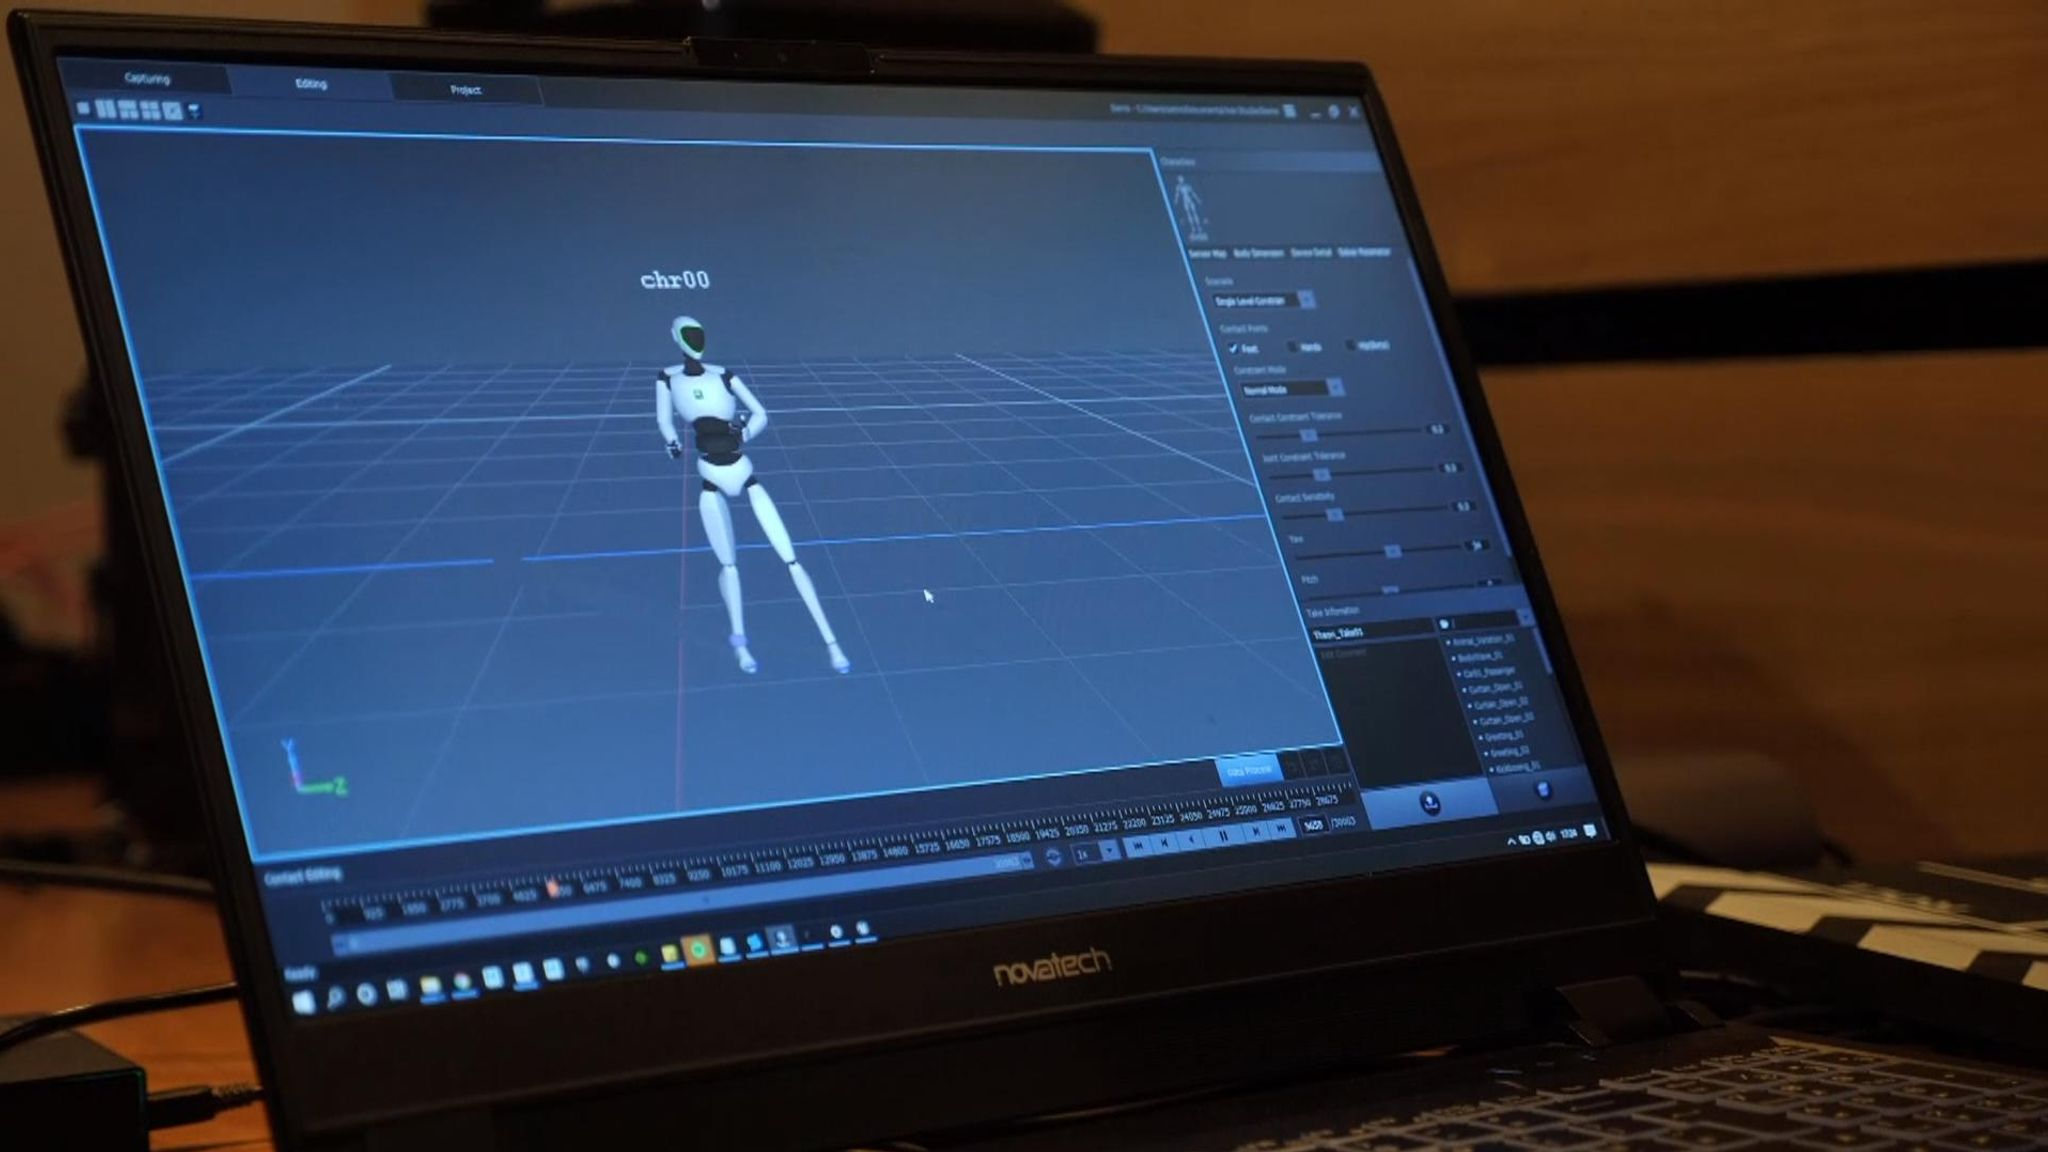 Theon Cross is turned into an avatar for SXSW Festival following motion capture filming at Abbey Road Studios